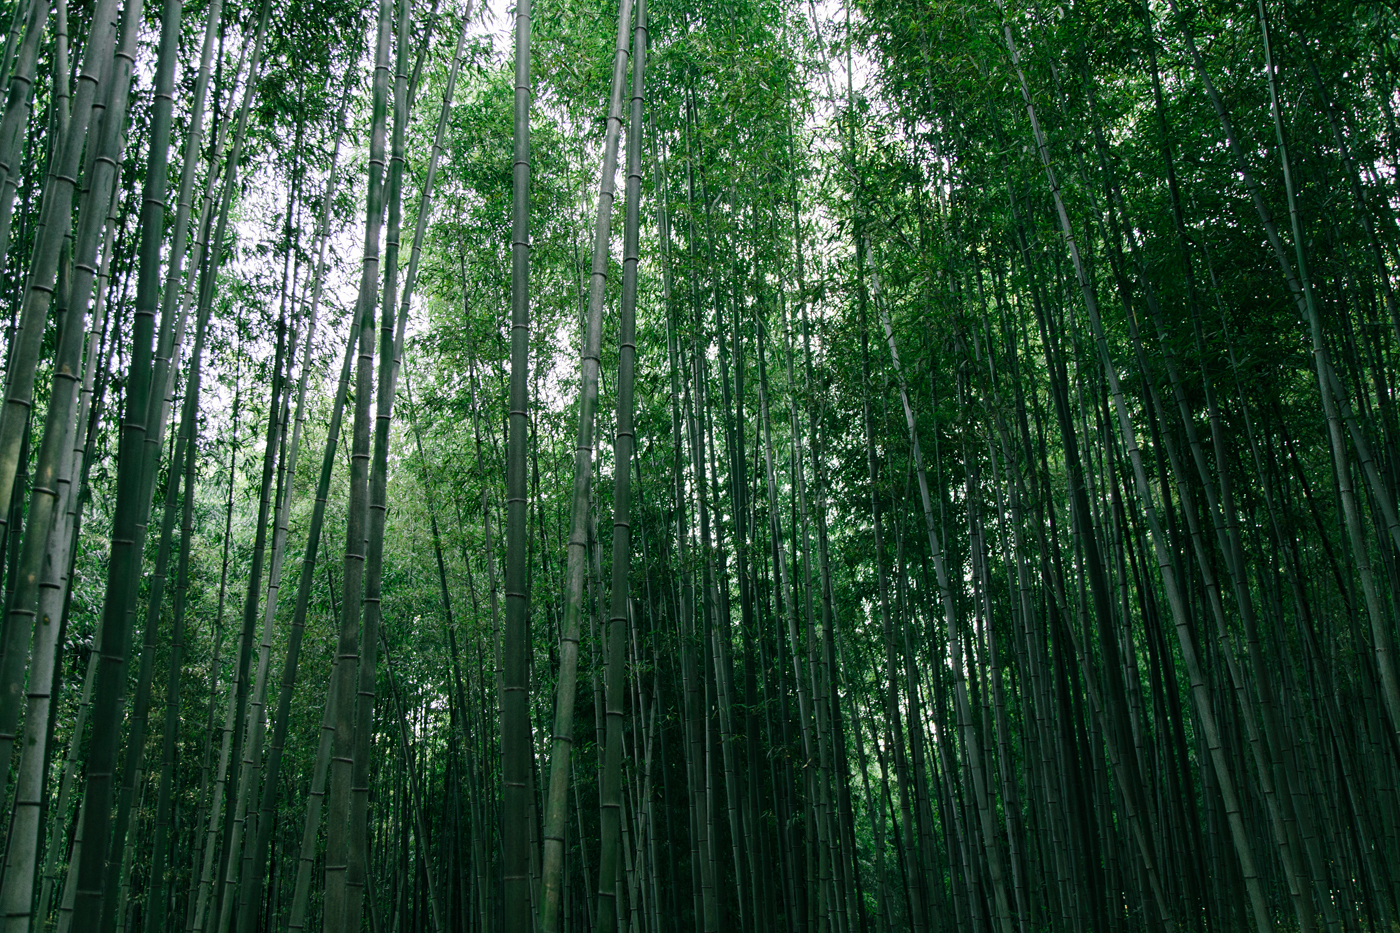 Namhae (남해) Road Trip Series: Damyang Bamboo Forest (담양대나무숲), South Korea.